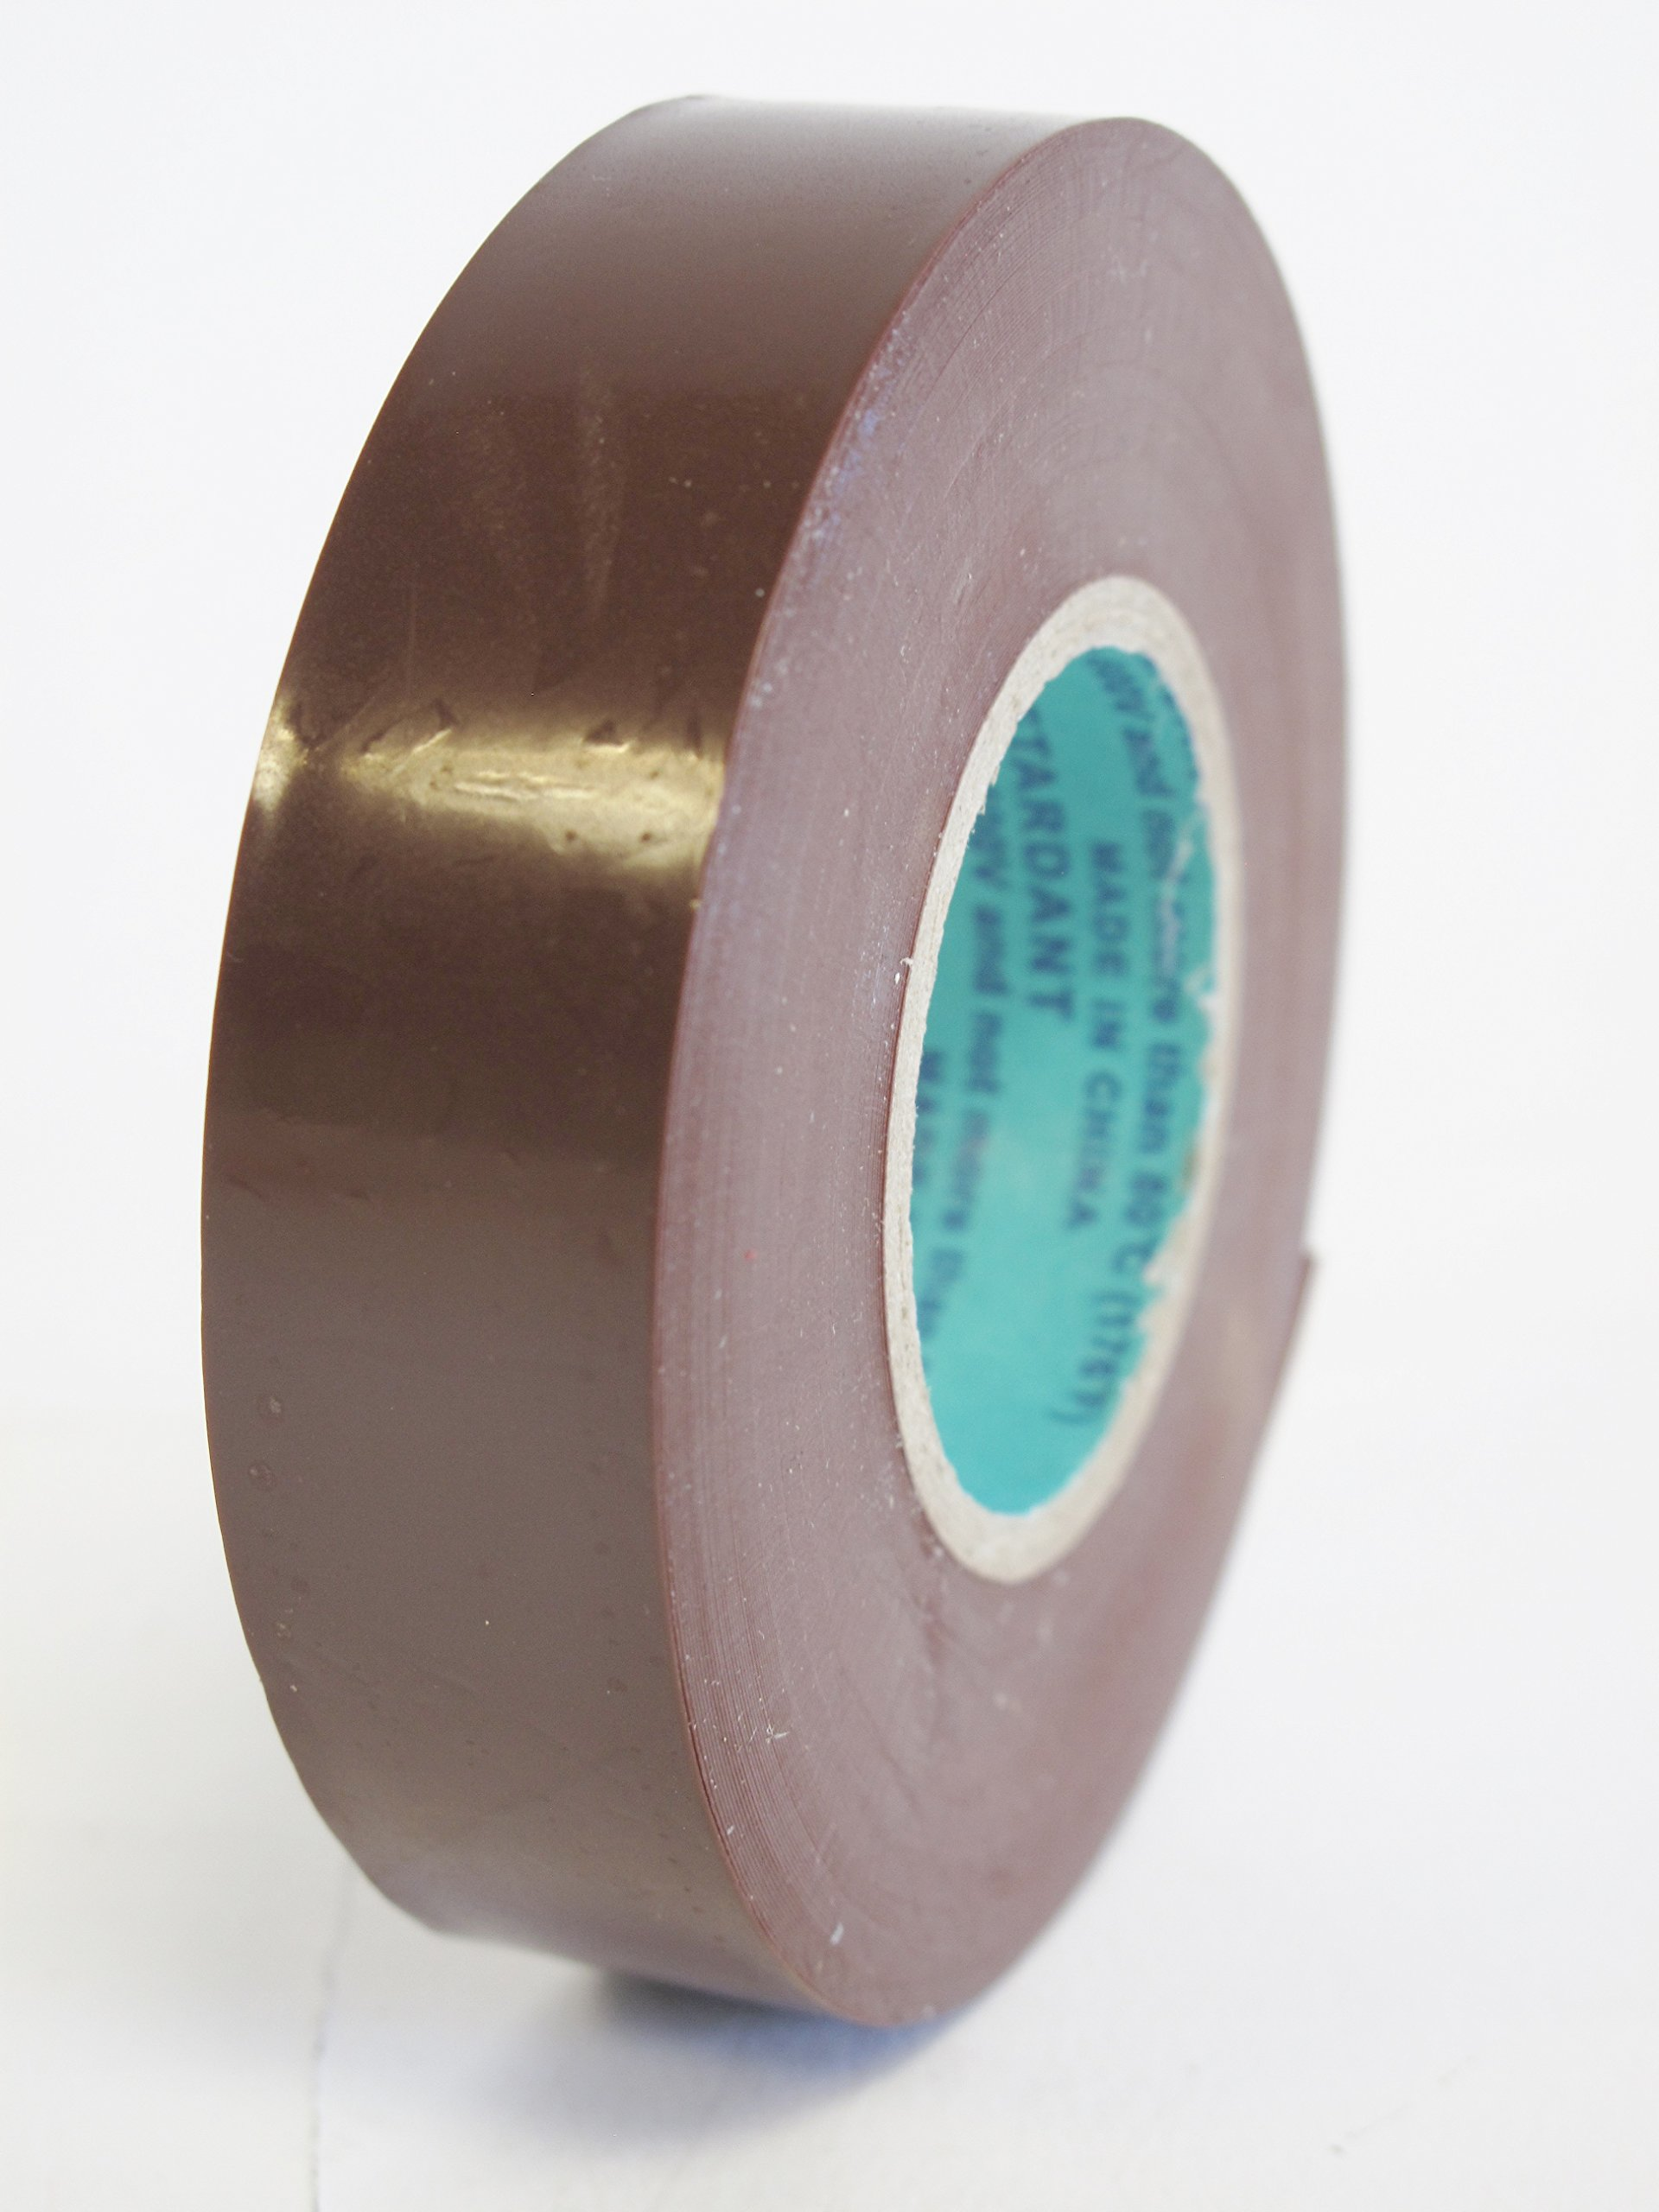 10 Rolls Professional Industrial General Purpose Electrical Tape with Moisture Tight Protection - 3/4 Inch X 66 Feet - Brown Color - 10 Rolls per Case